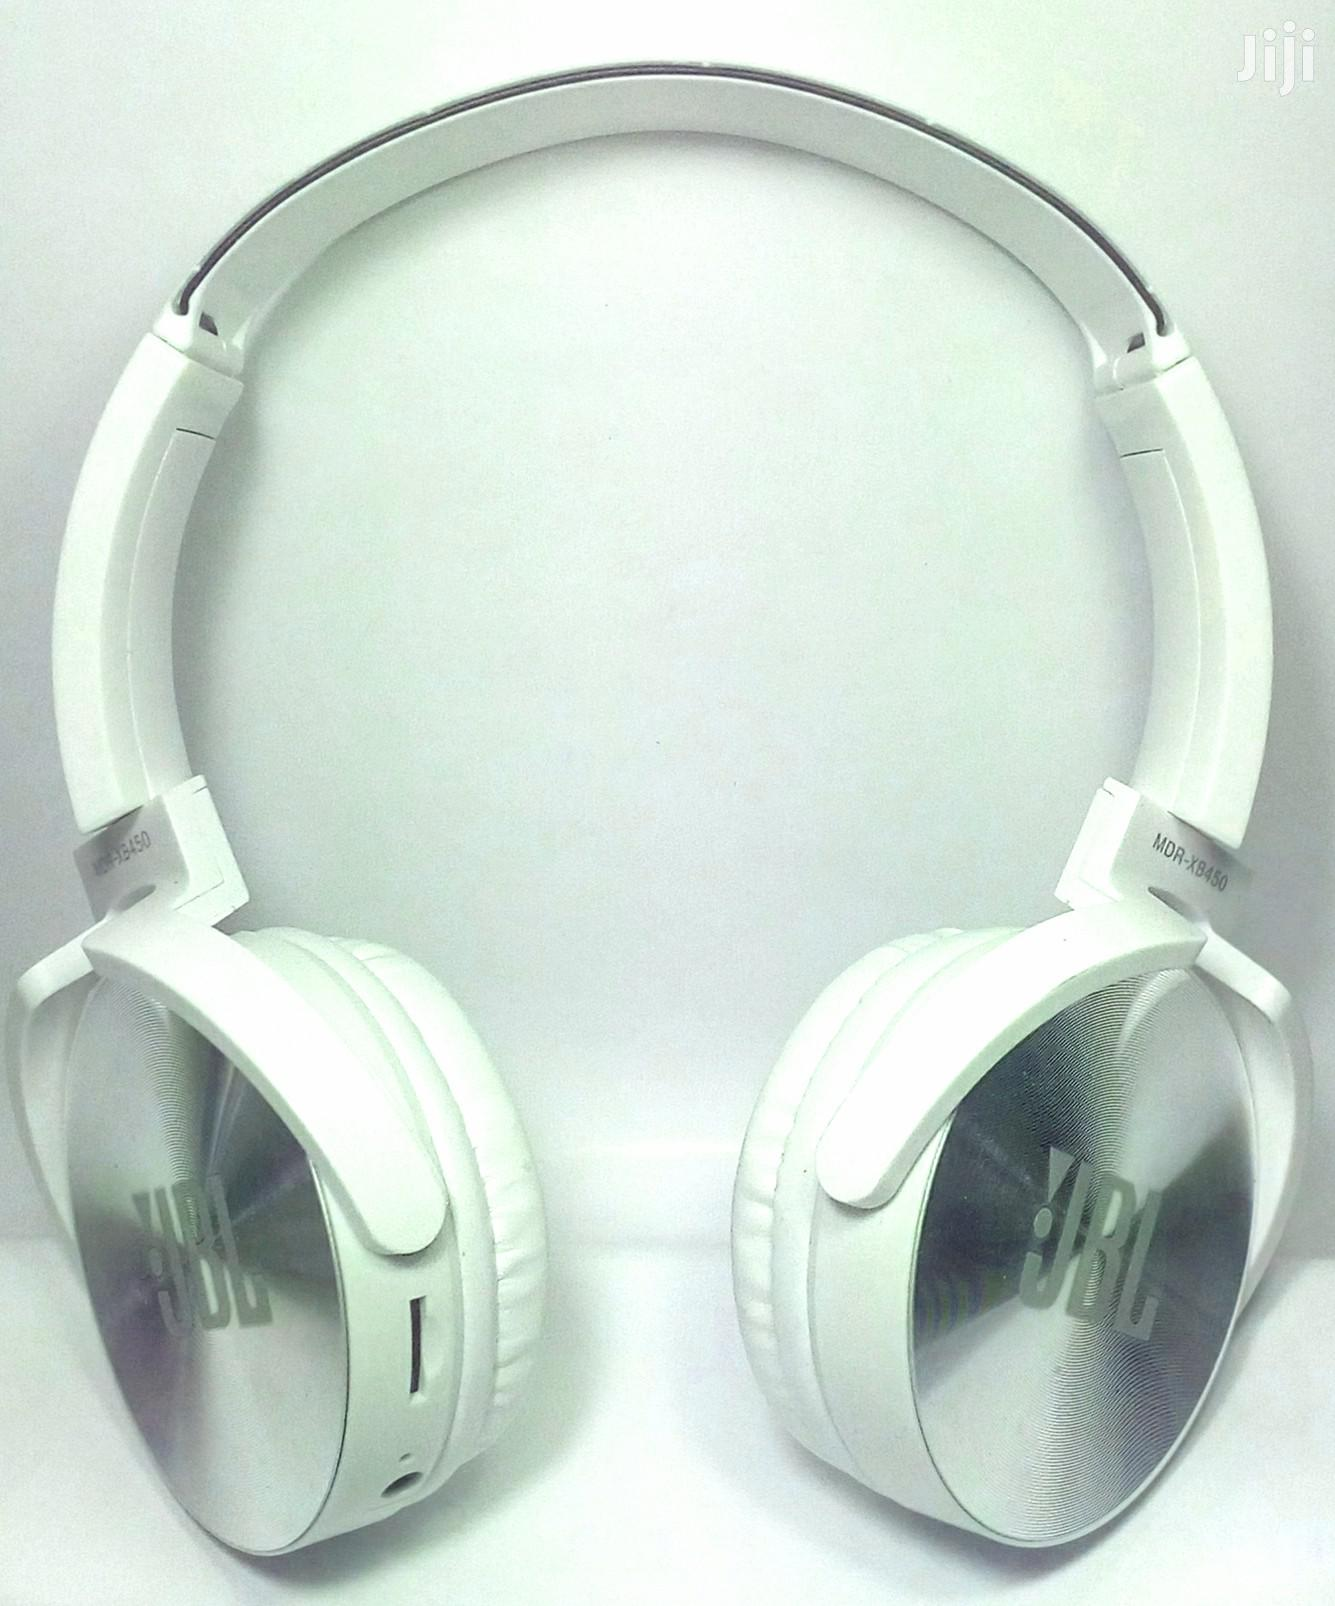 JBL Wireless Headphones - Gray | Headphones for sale in Kampala, Central Region, Uganda